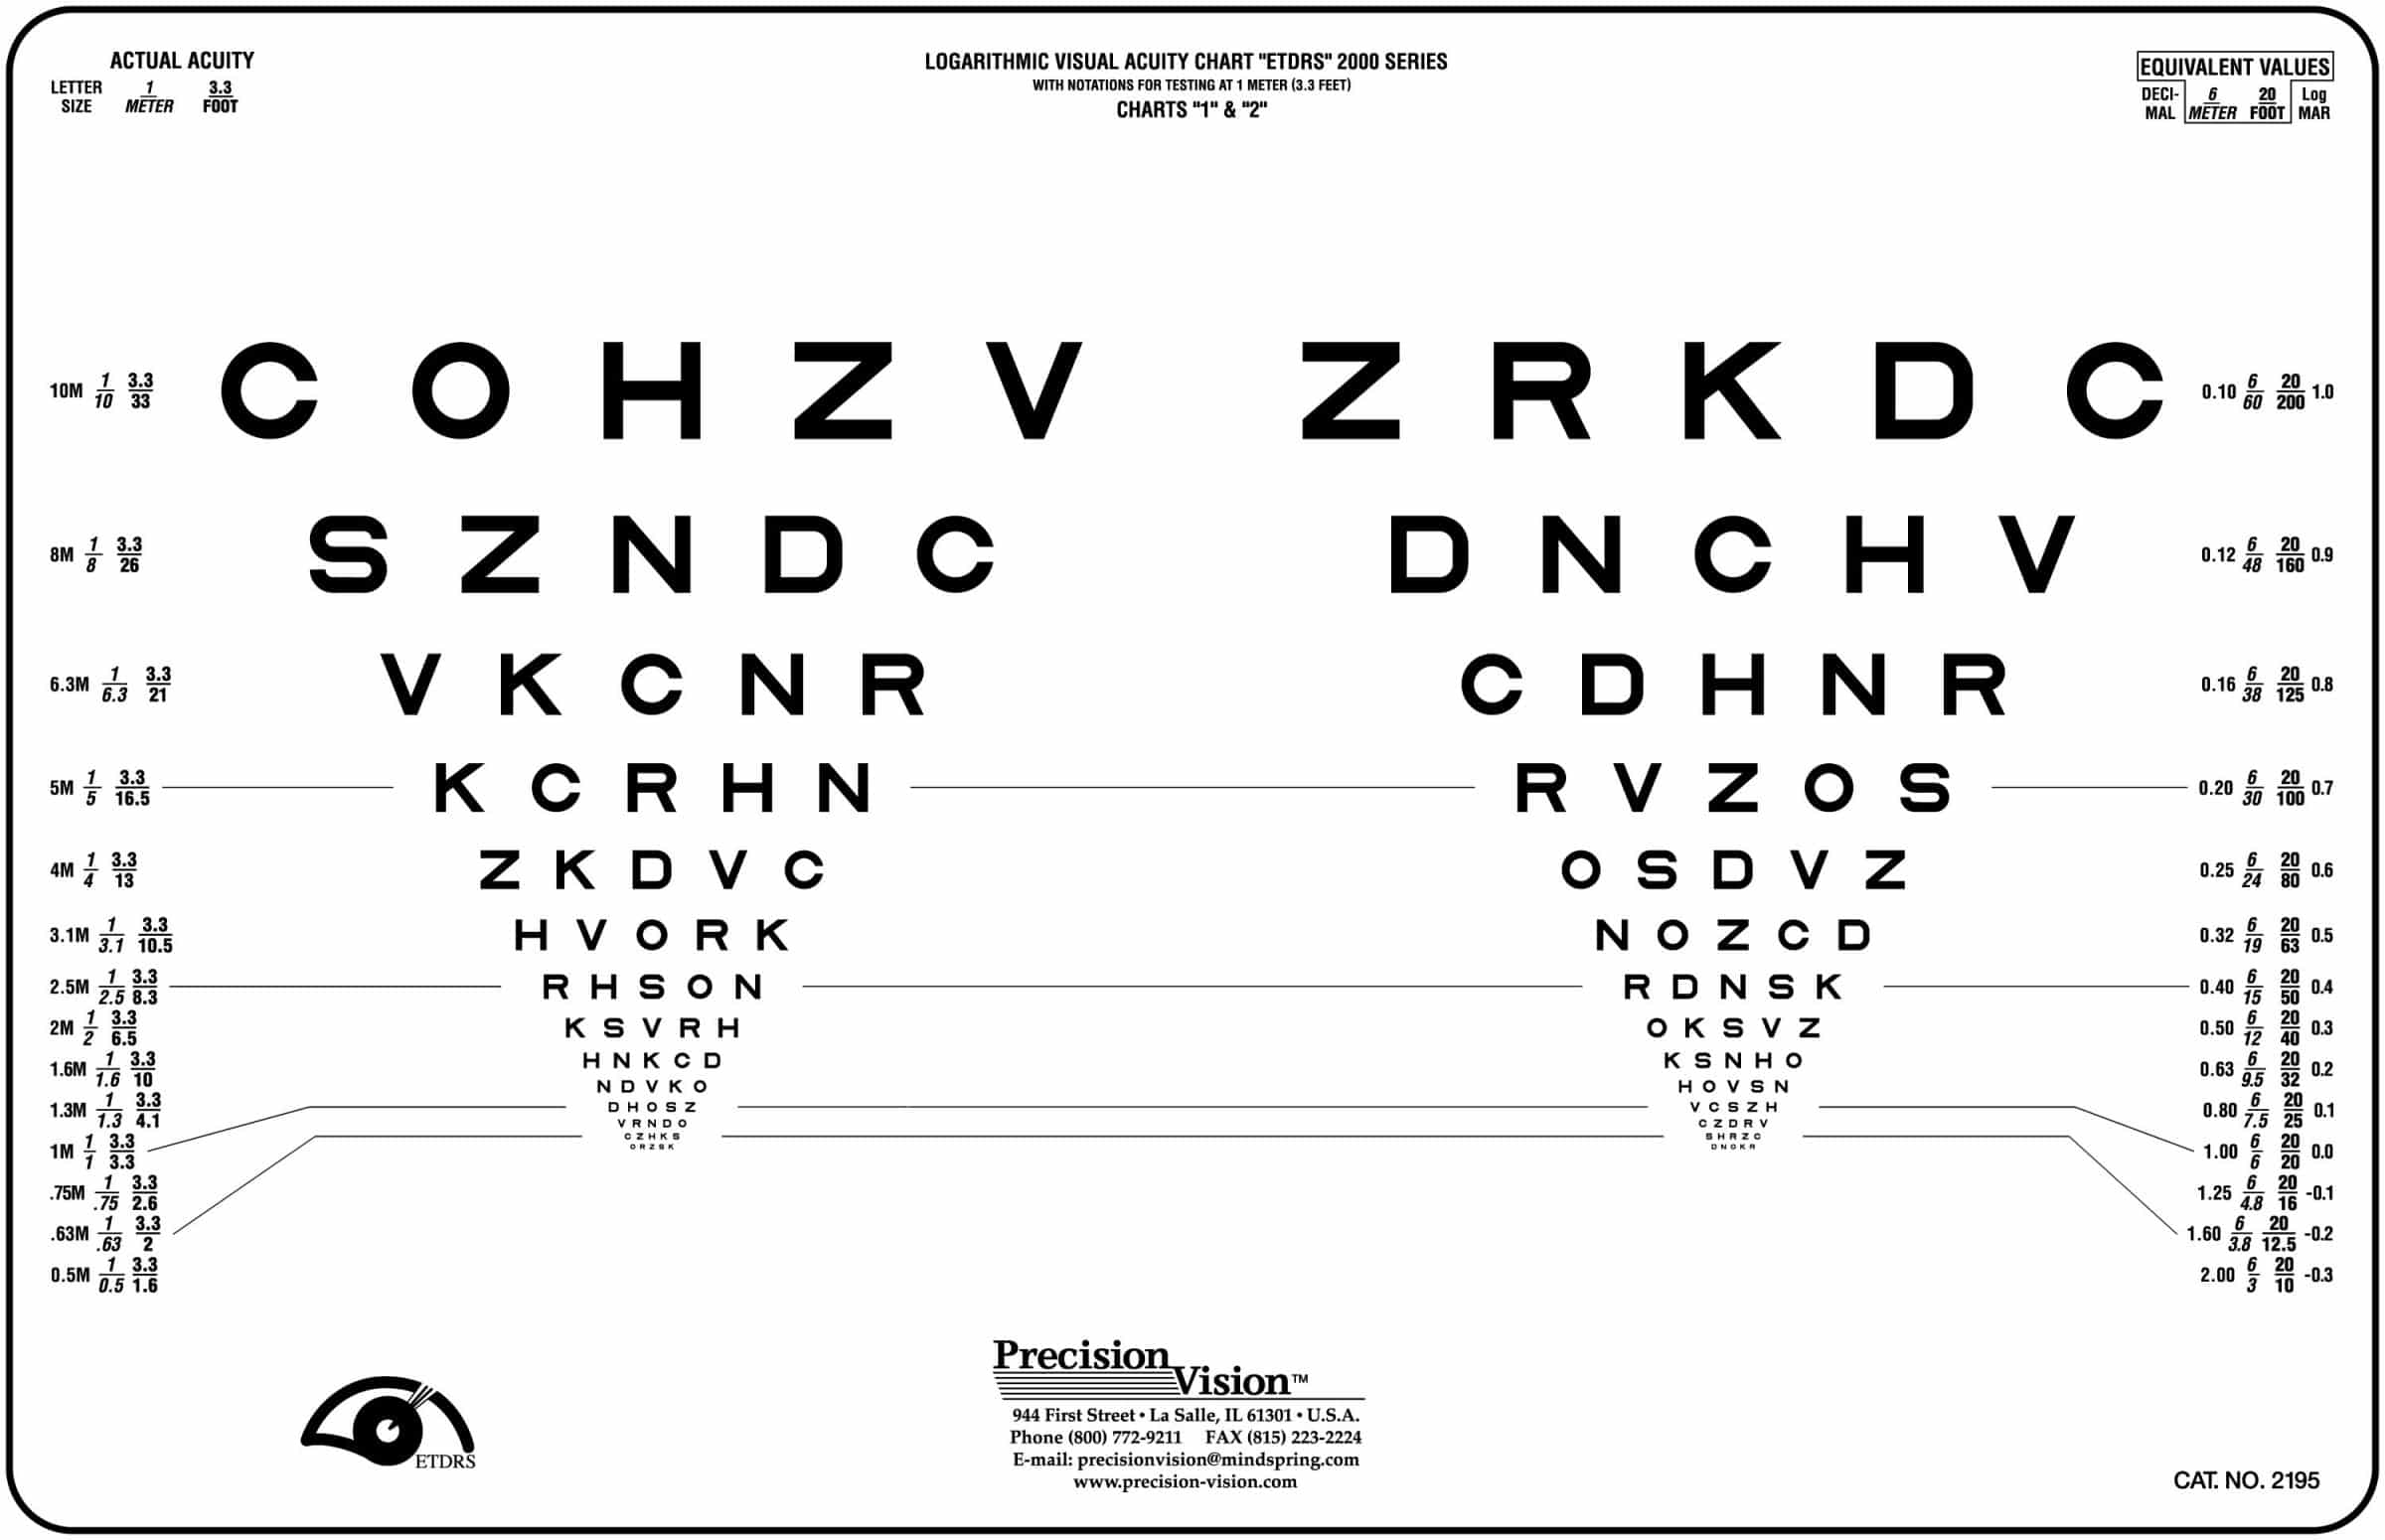 SLOAN Logarithmic Visual Acuity Charts 1 and 2ETDRS 2000